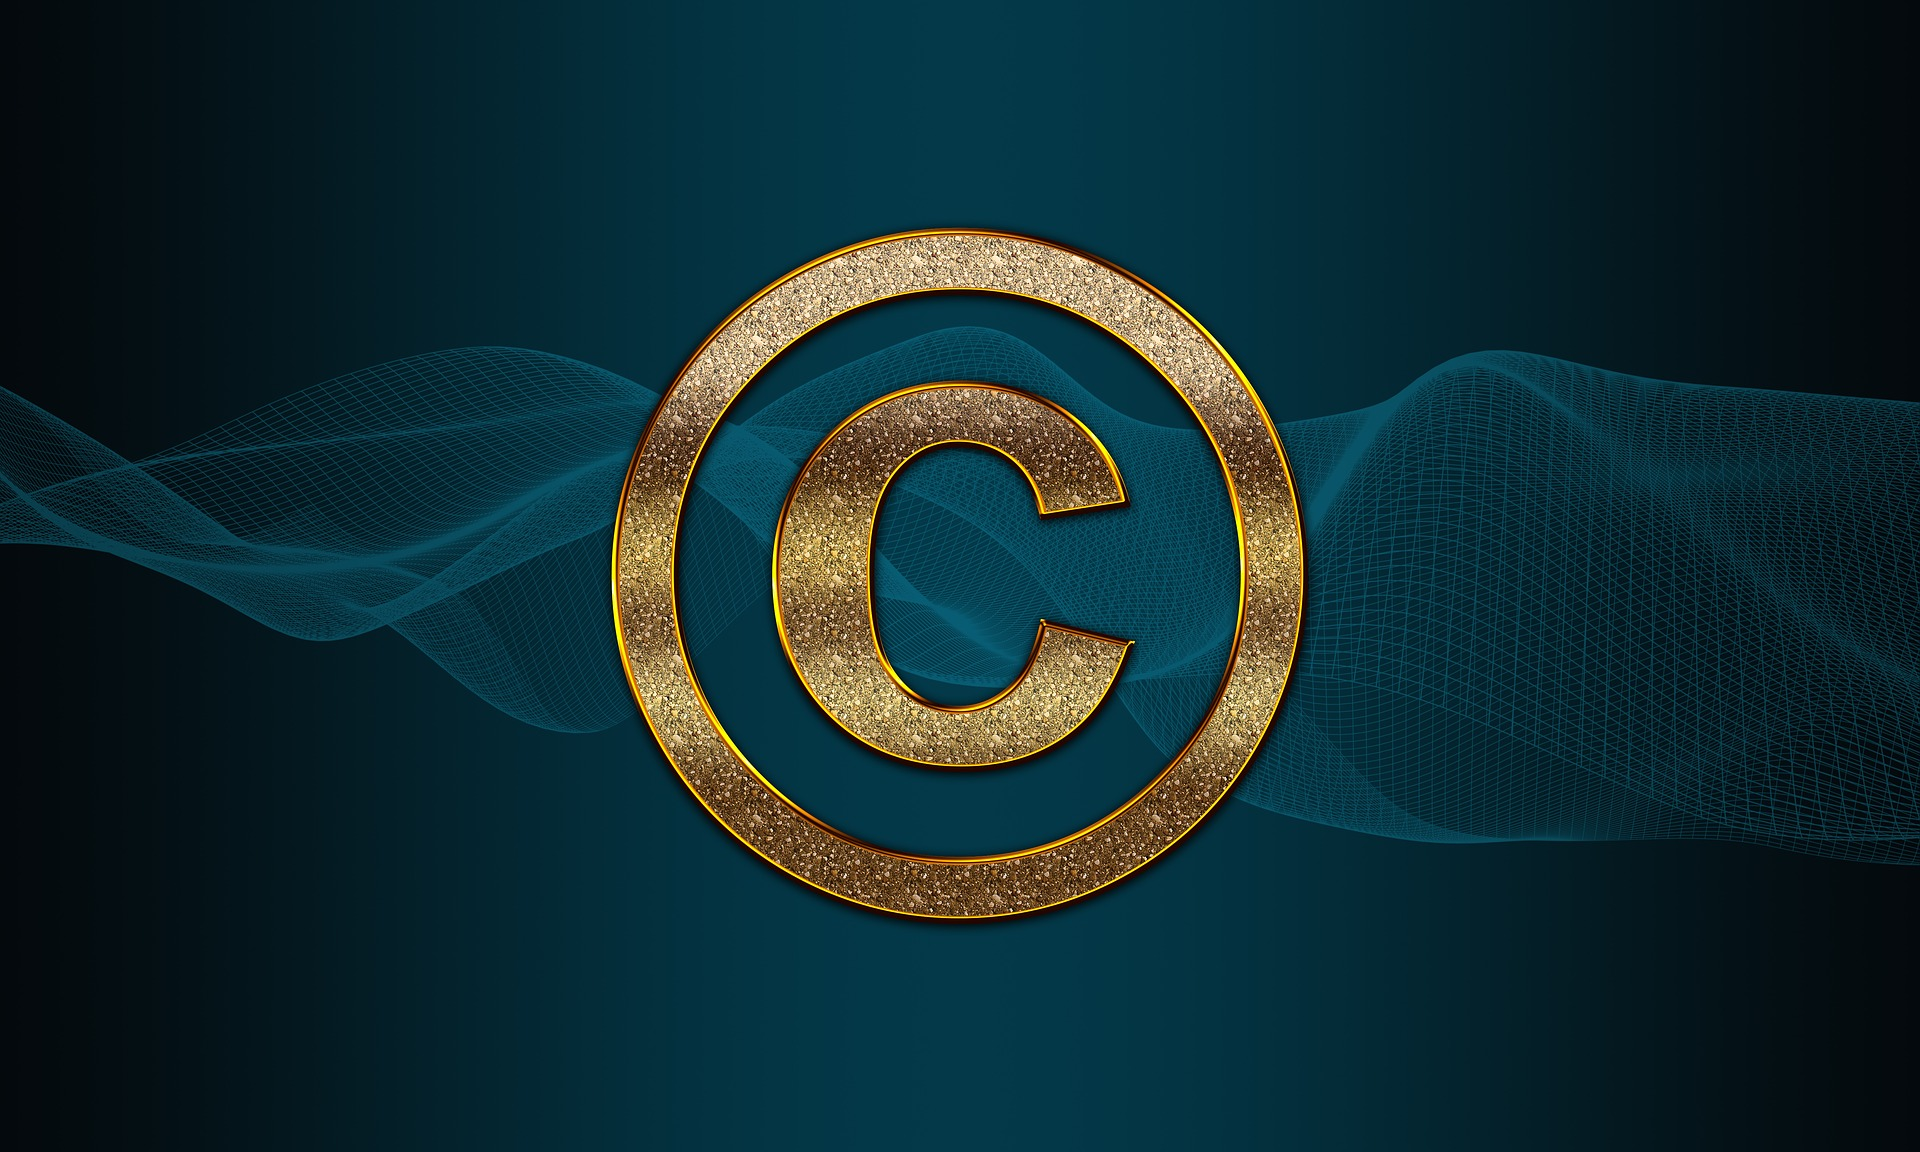 copyright: the law underlying software licenses